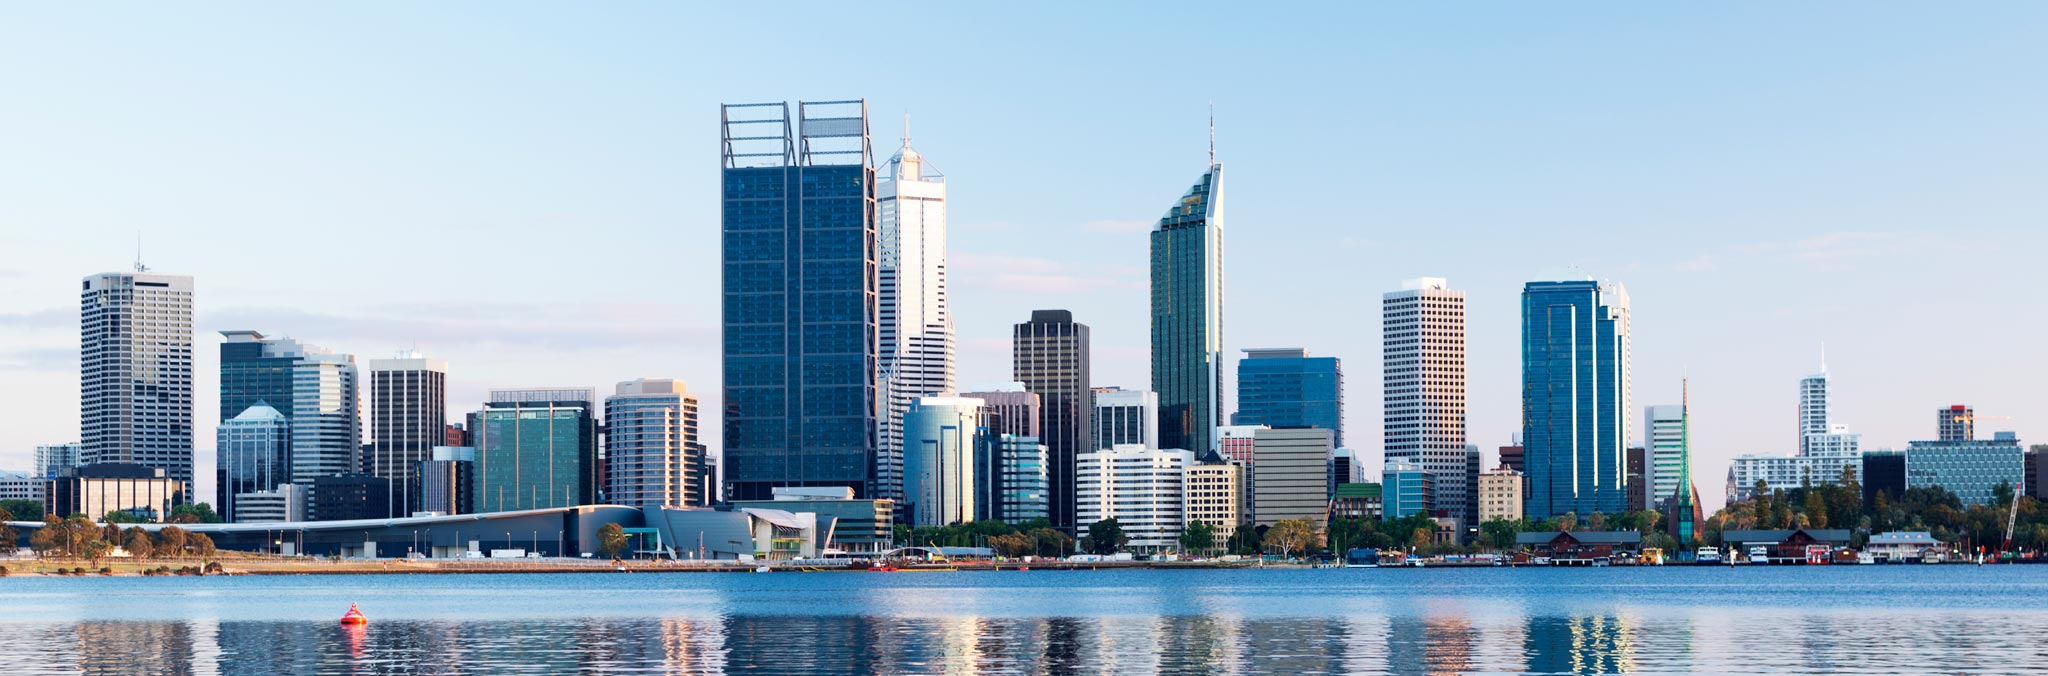 Find real estate agents Perth - https://wasettlements.com.au/